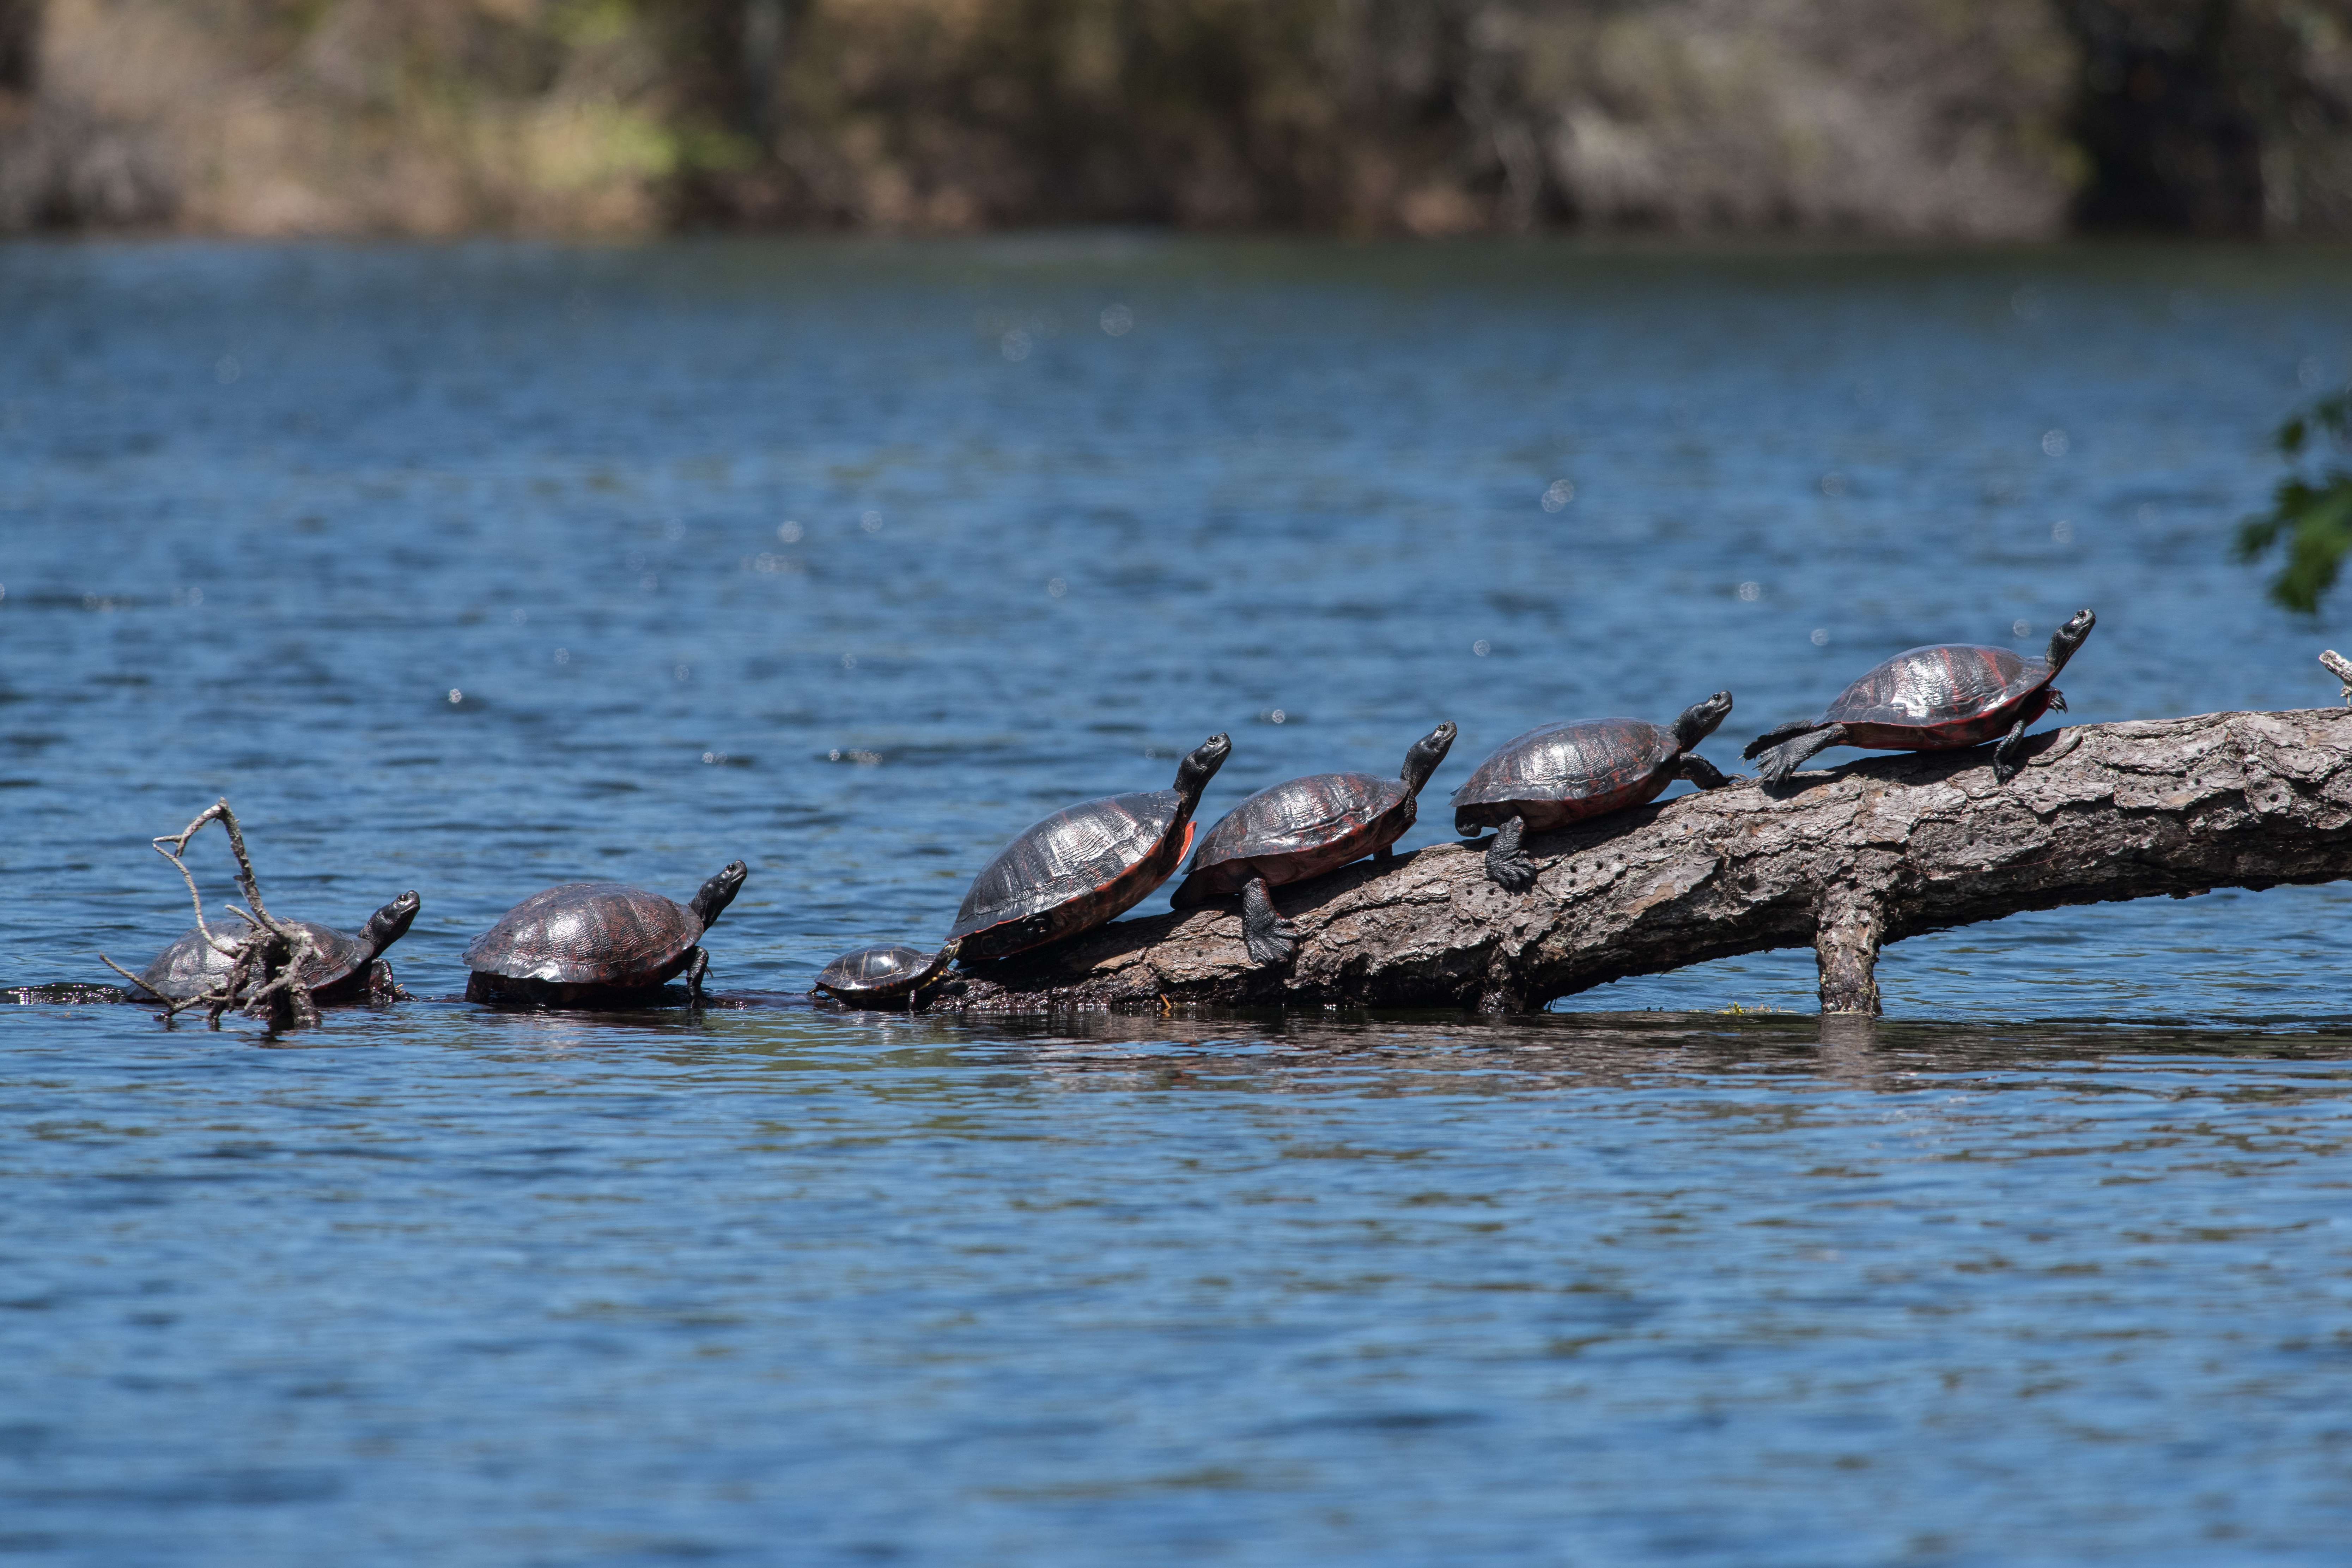 Image of American Red-bellied Turtle